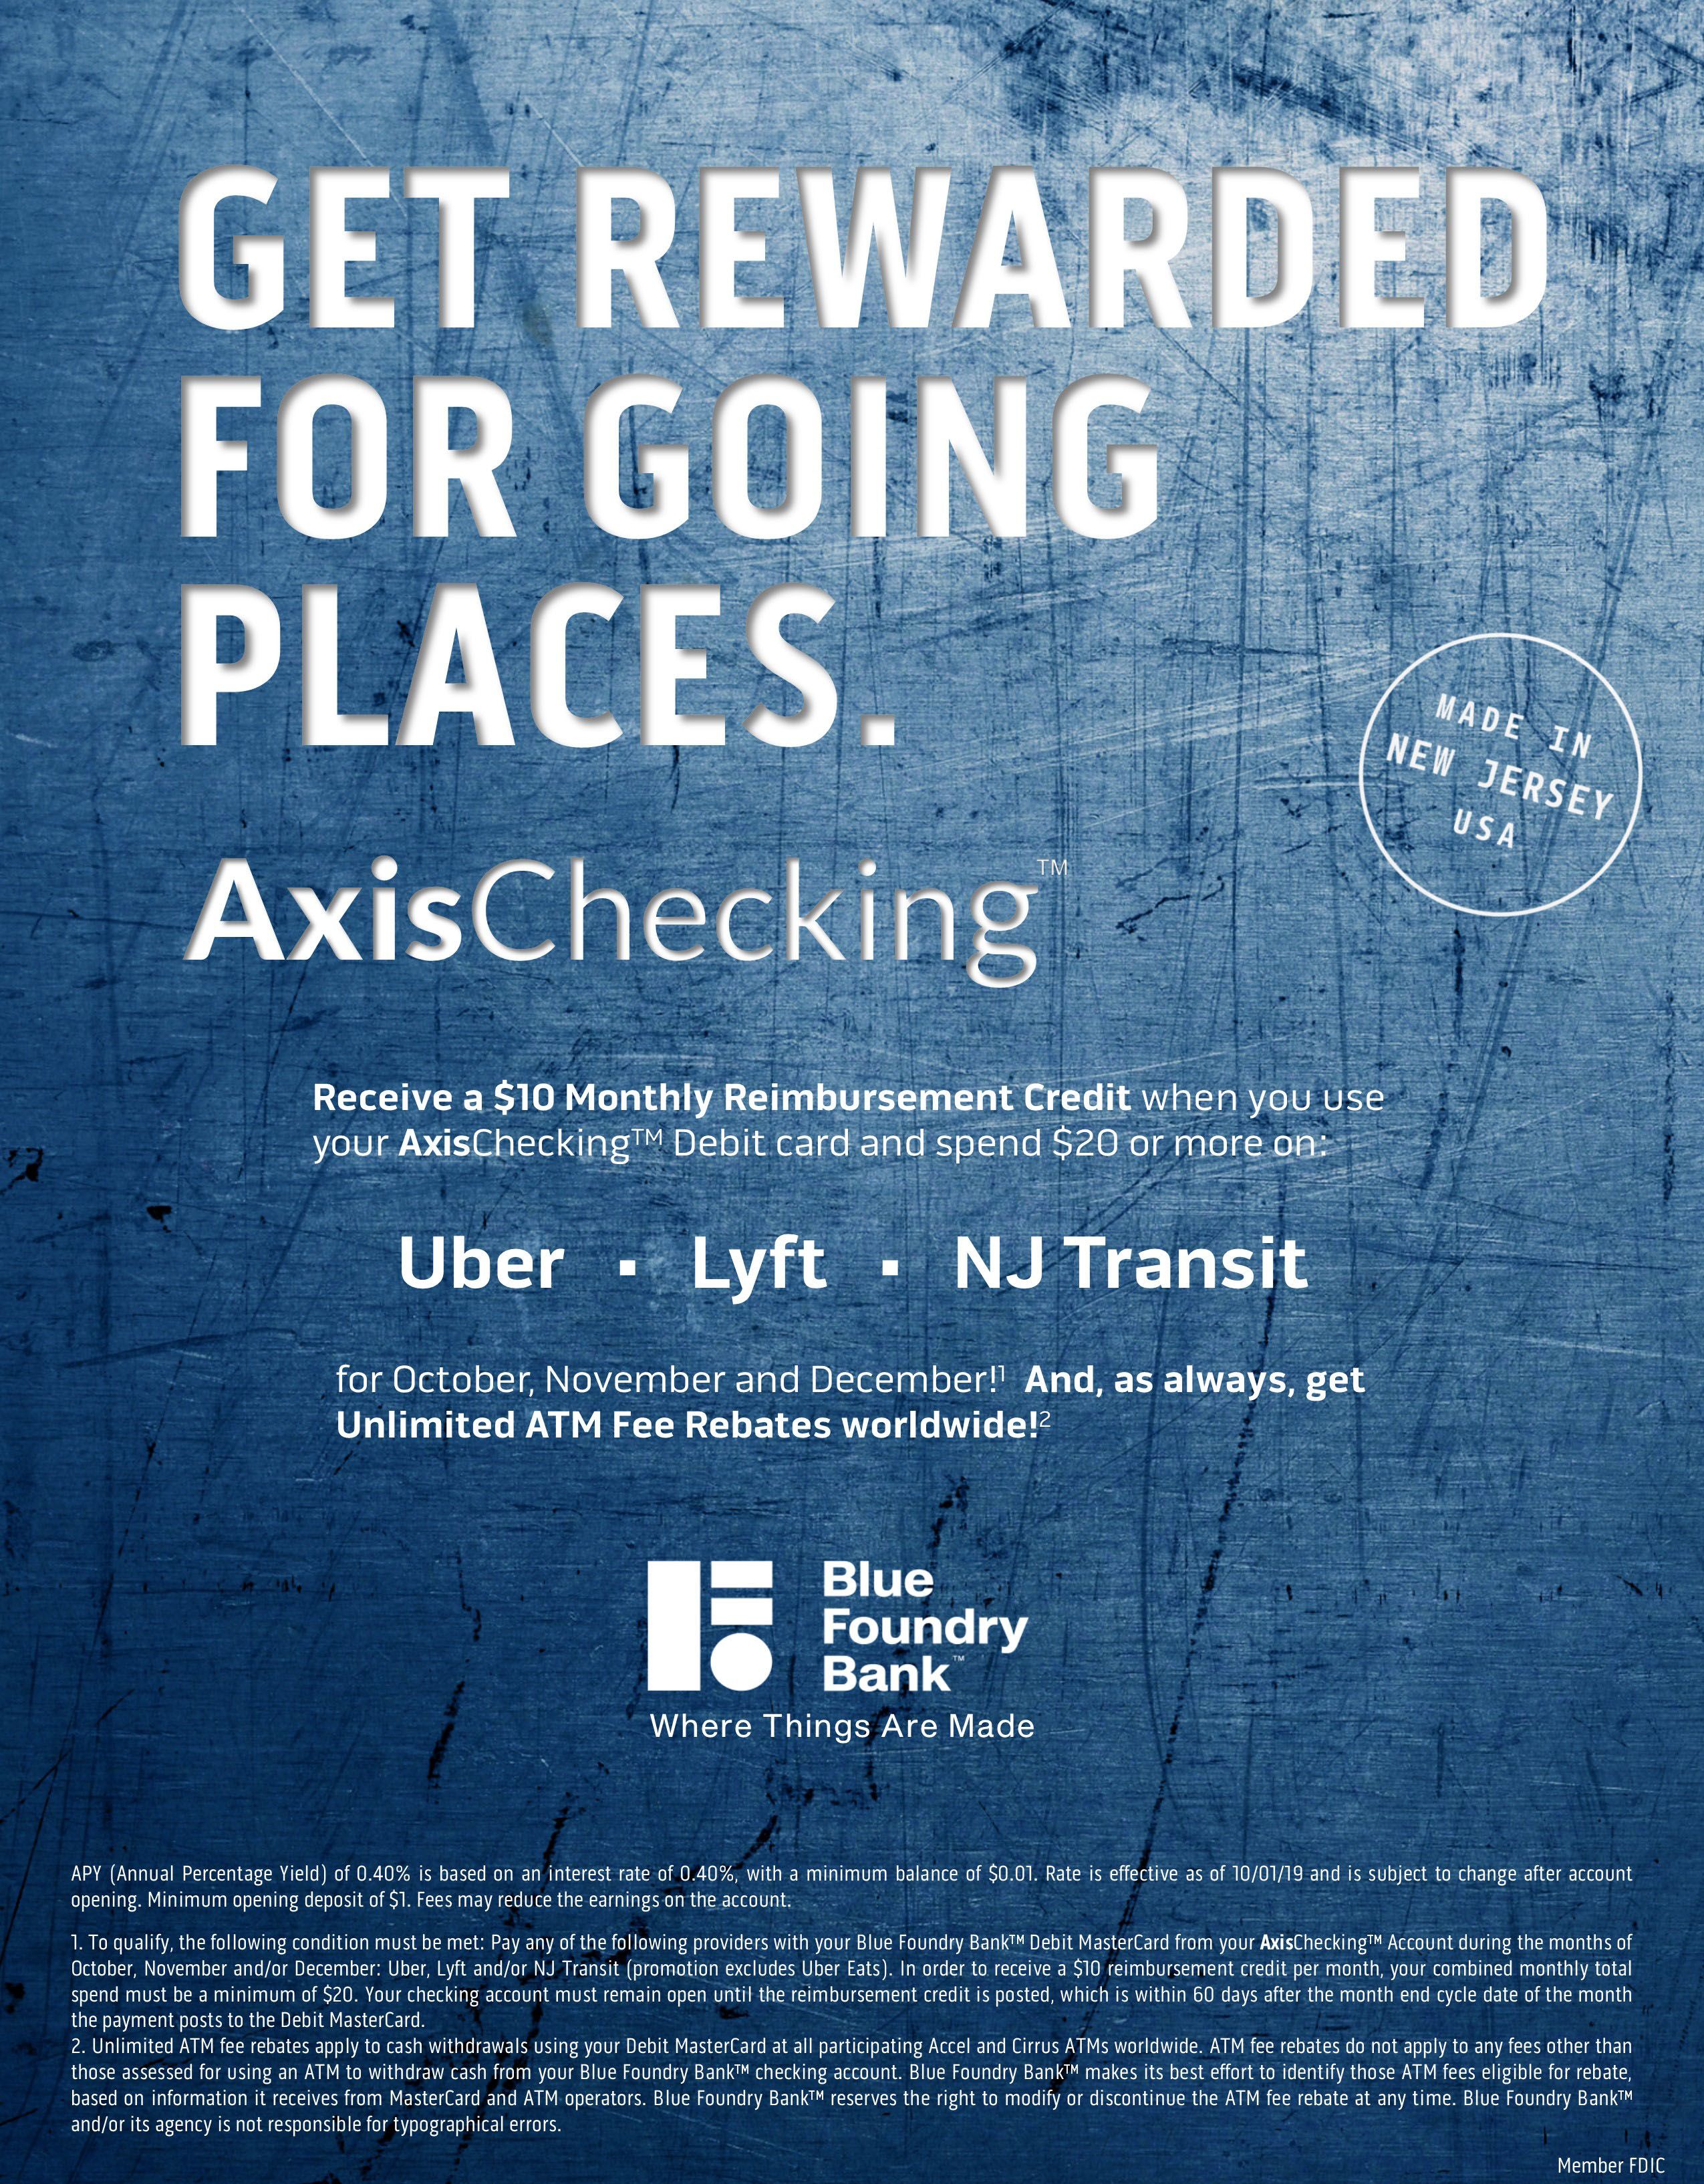 AxisChecking 4Q 2019 Flyer-for website